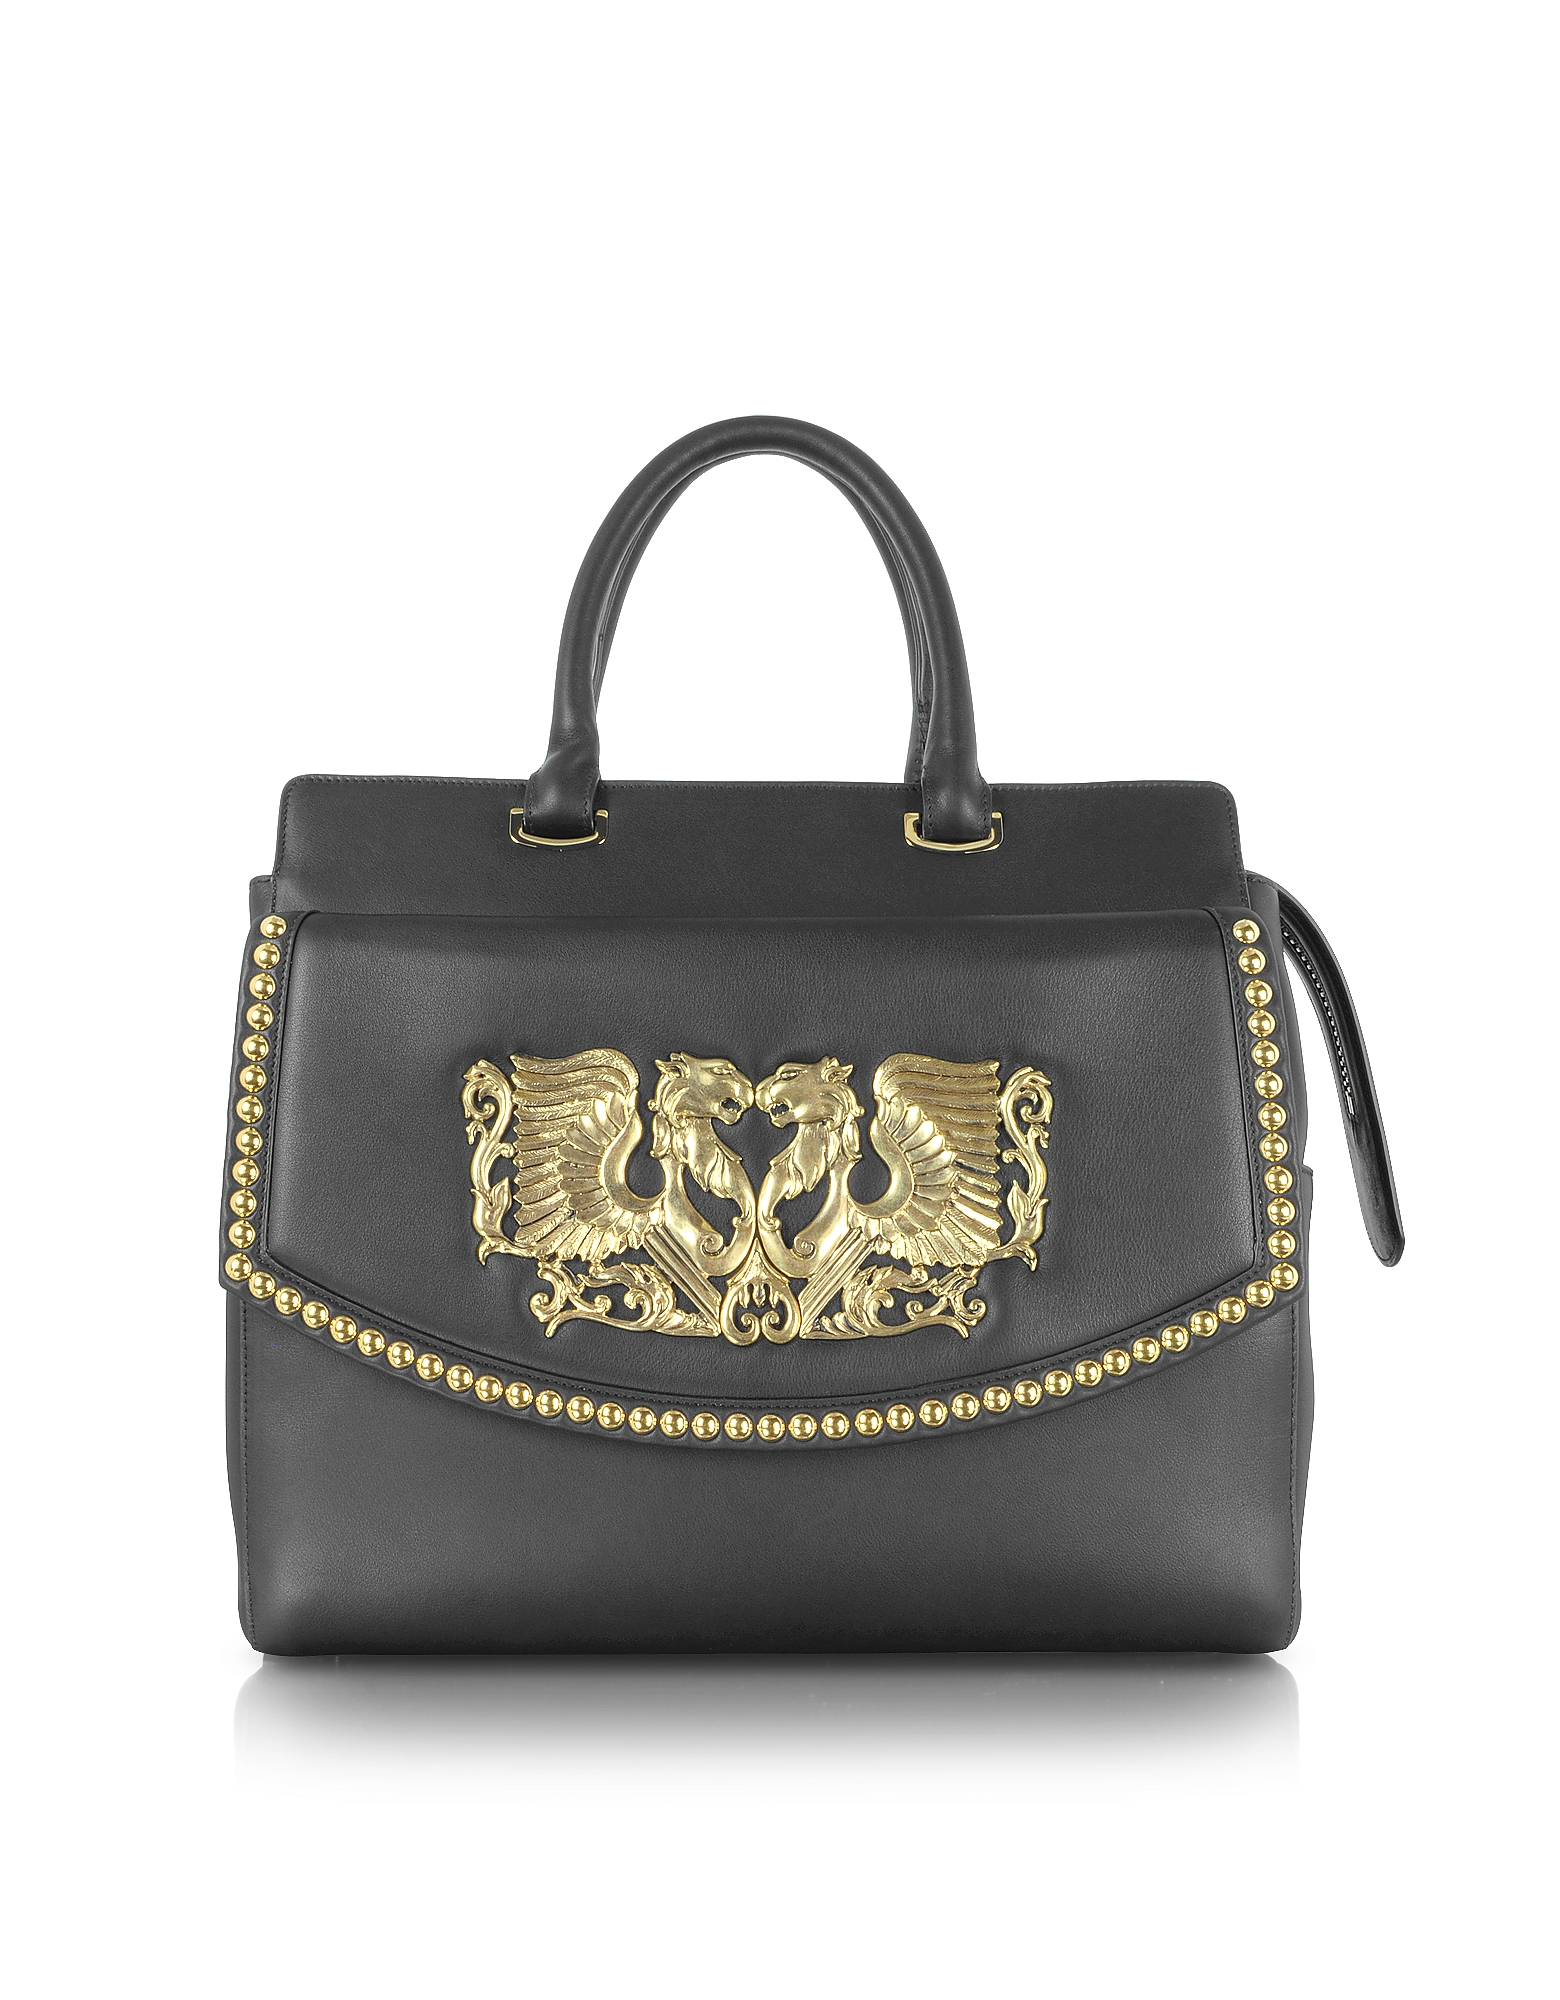 Roberto Cavalli Handbags, Aphrodite Jewel Goldtone with Studs and Black Leather Tote